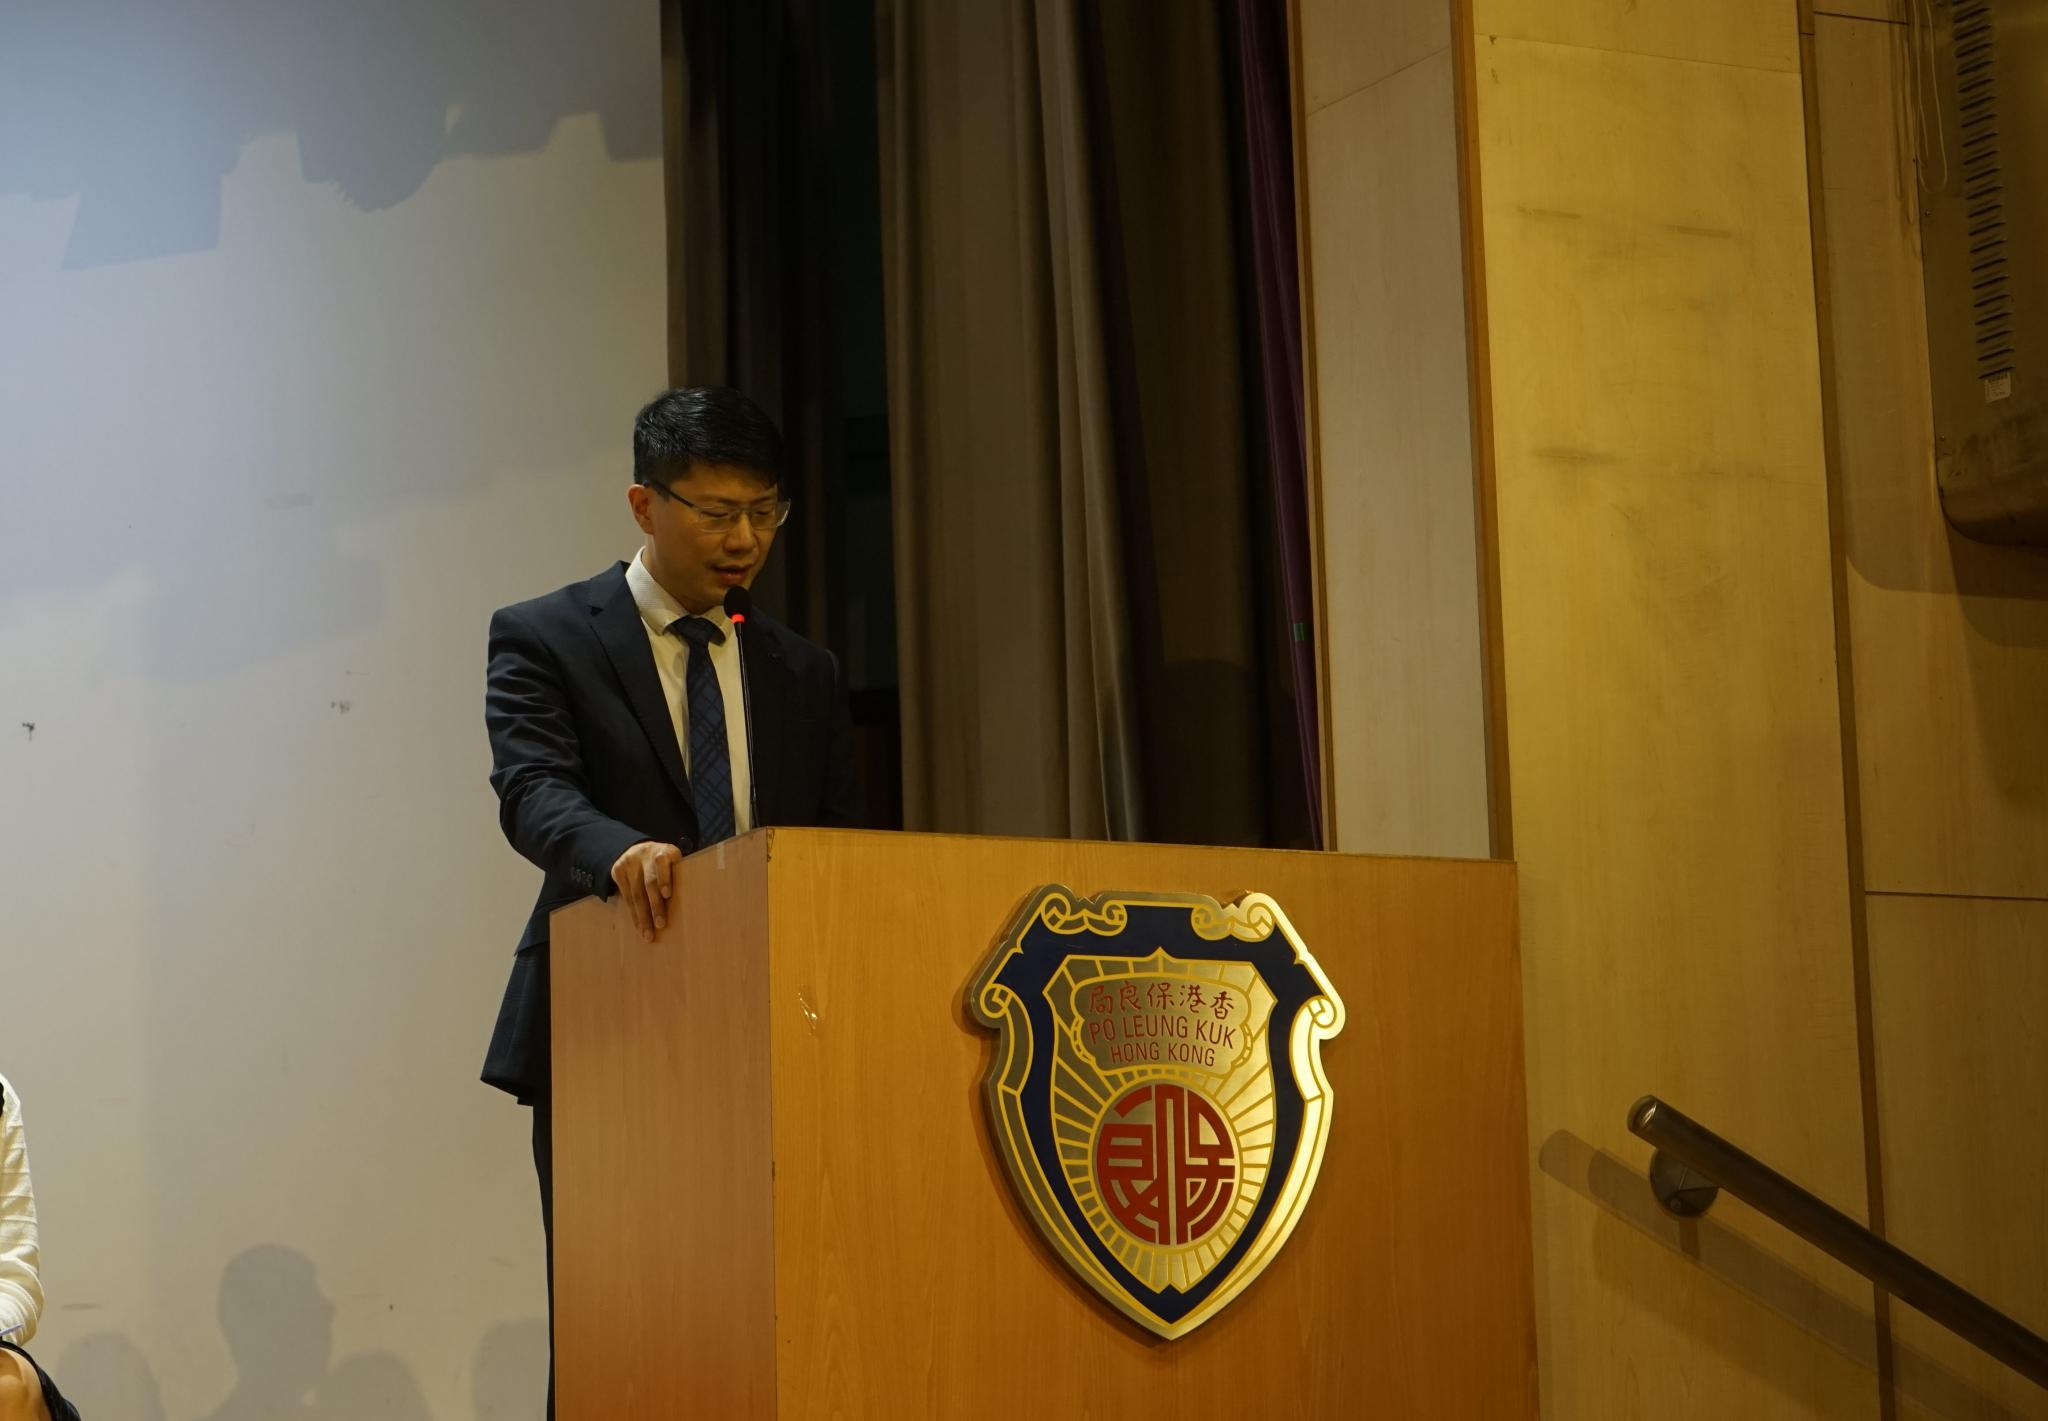 Our school Principal, Mr. Wong Chung Ki, delivered a welcoming address at the opening ceremony.